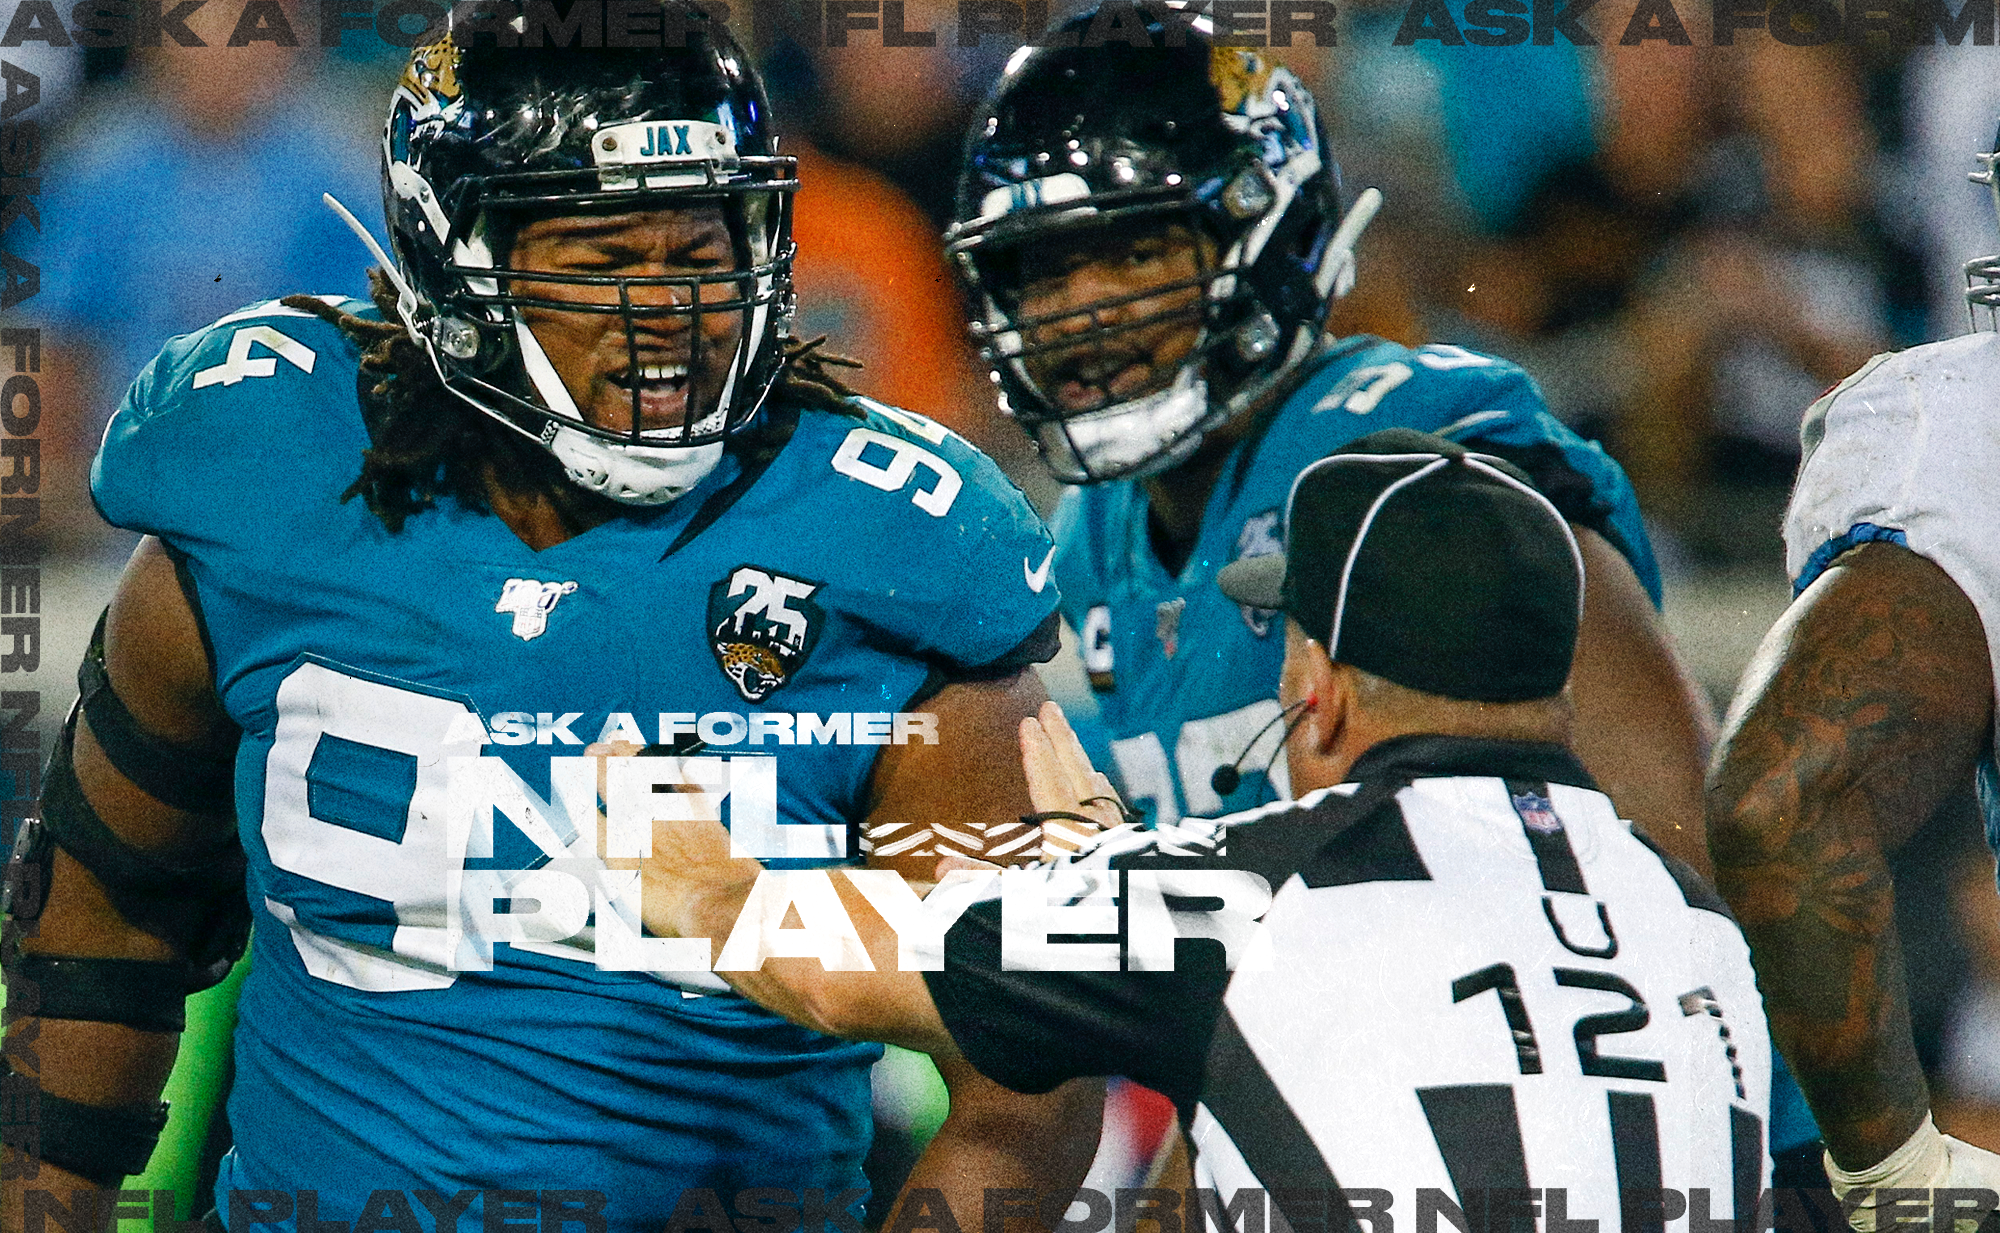 Ask a former NFL player: Who do we blame for all these holding penalties?